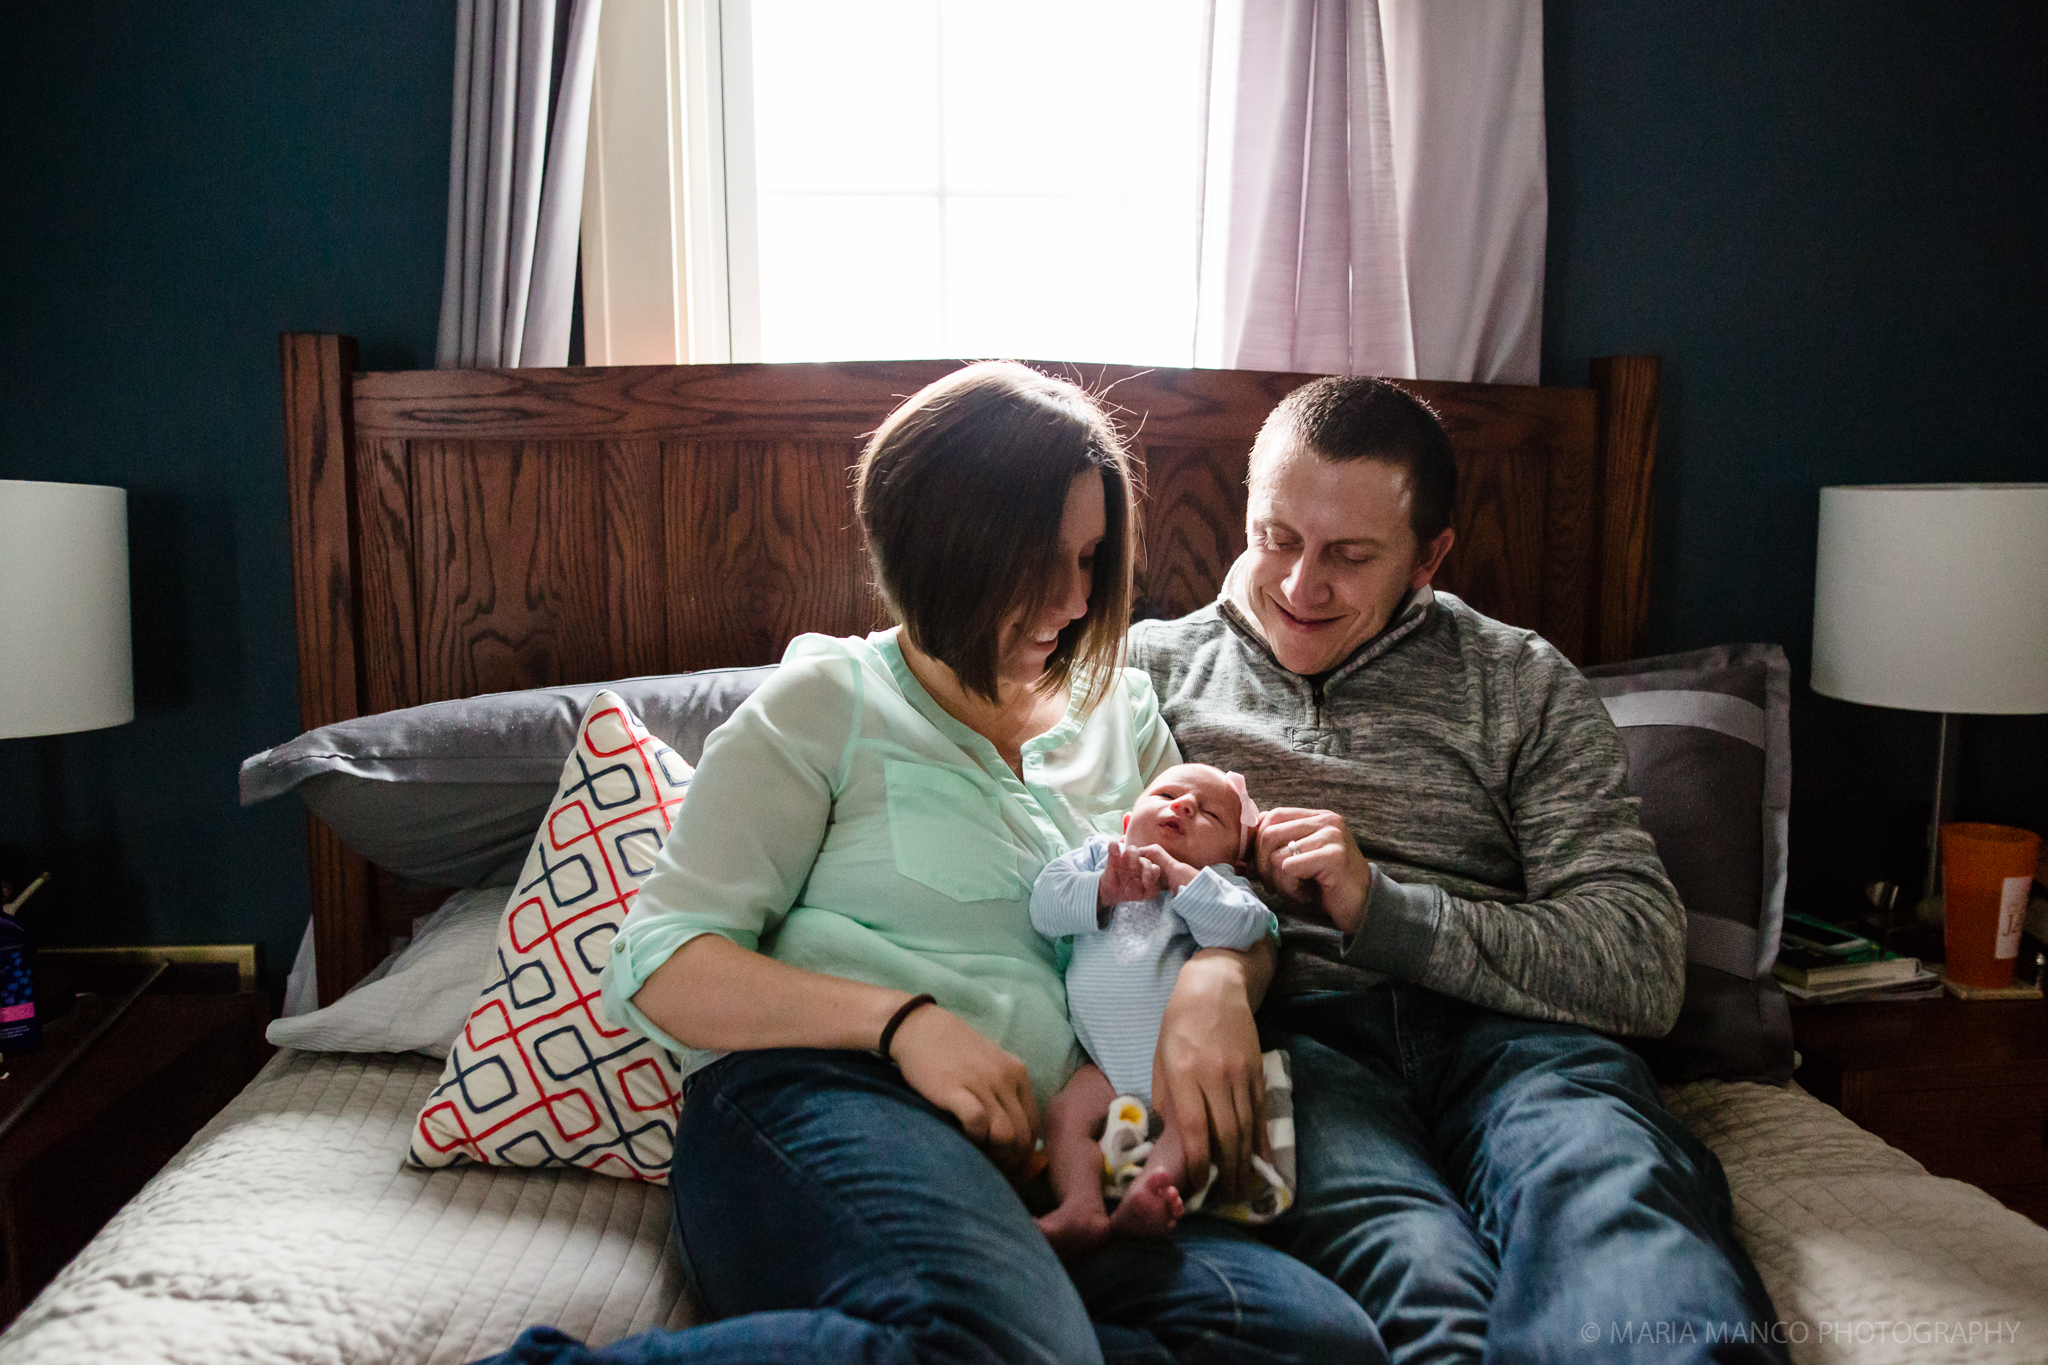 Lakewood Cleveland Ohio Family Chlidren Newborn Photographer Home Lifestyle Maria Manco Photography